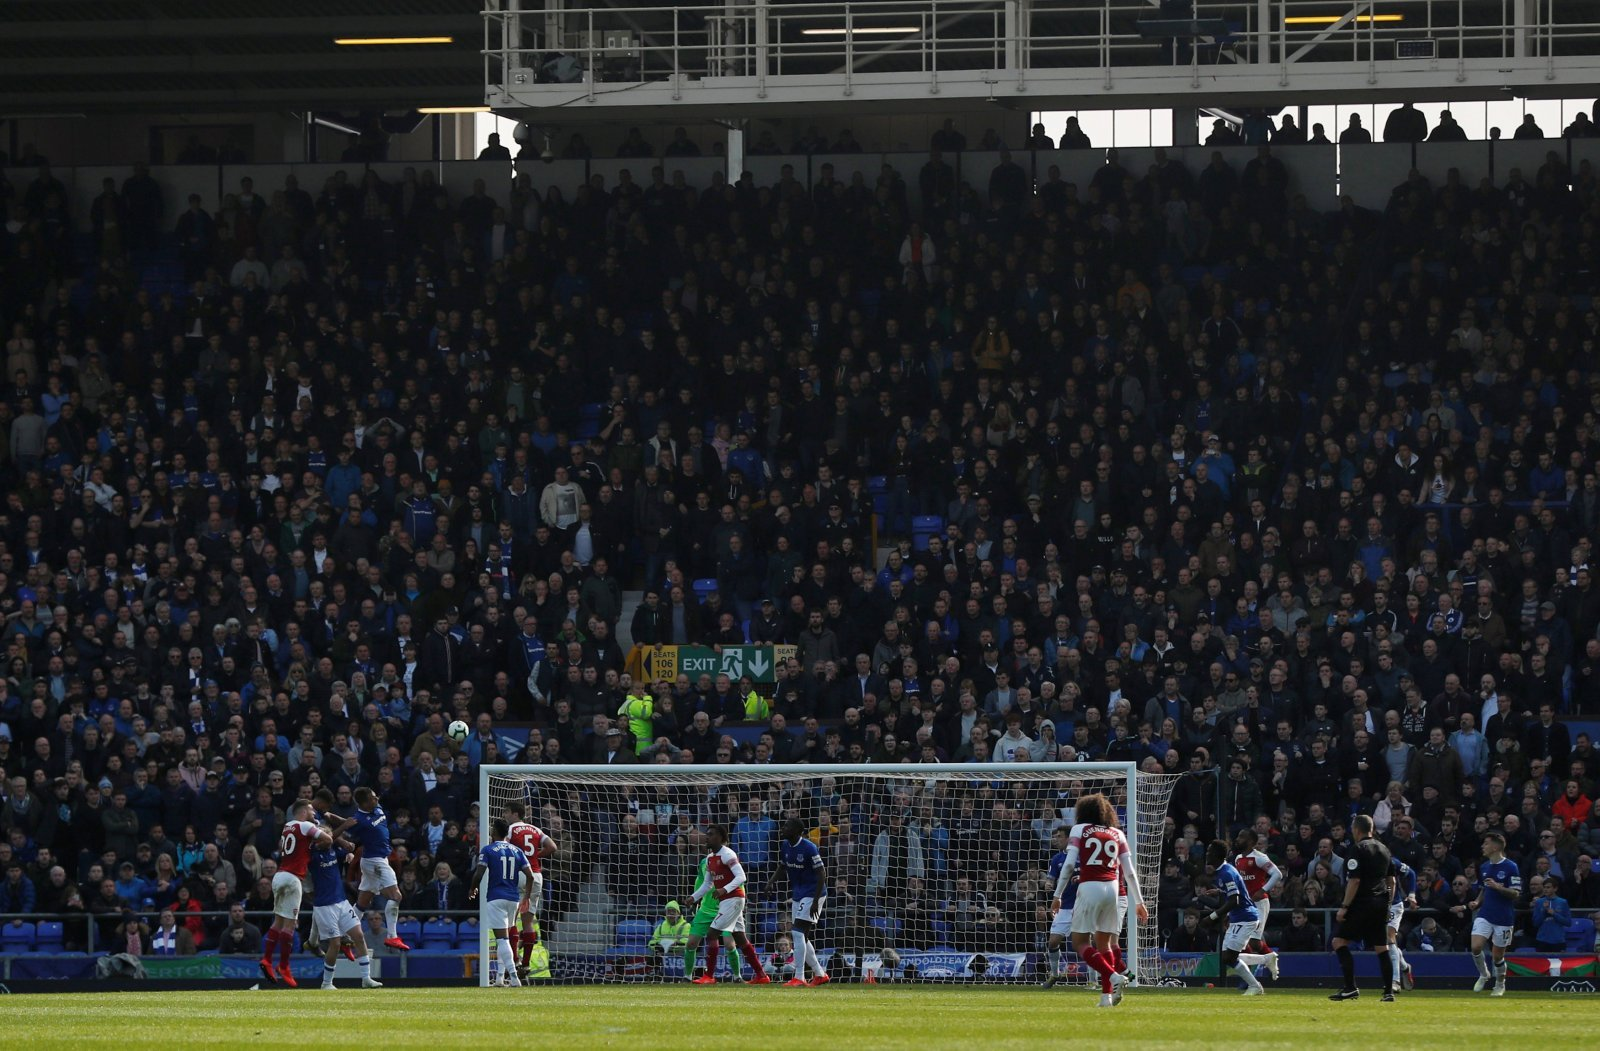 Everton: Goodison Park is becoming a fortress again